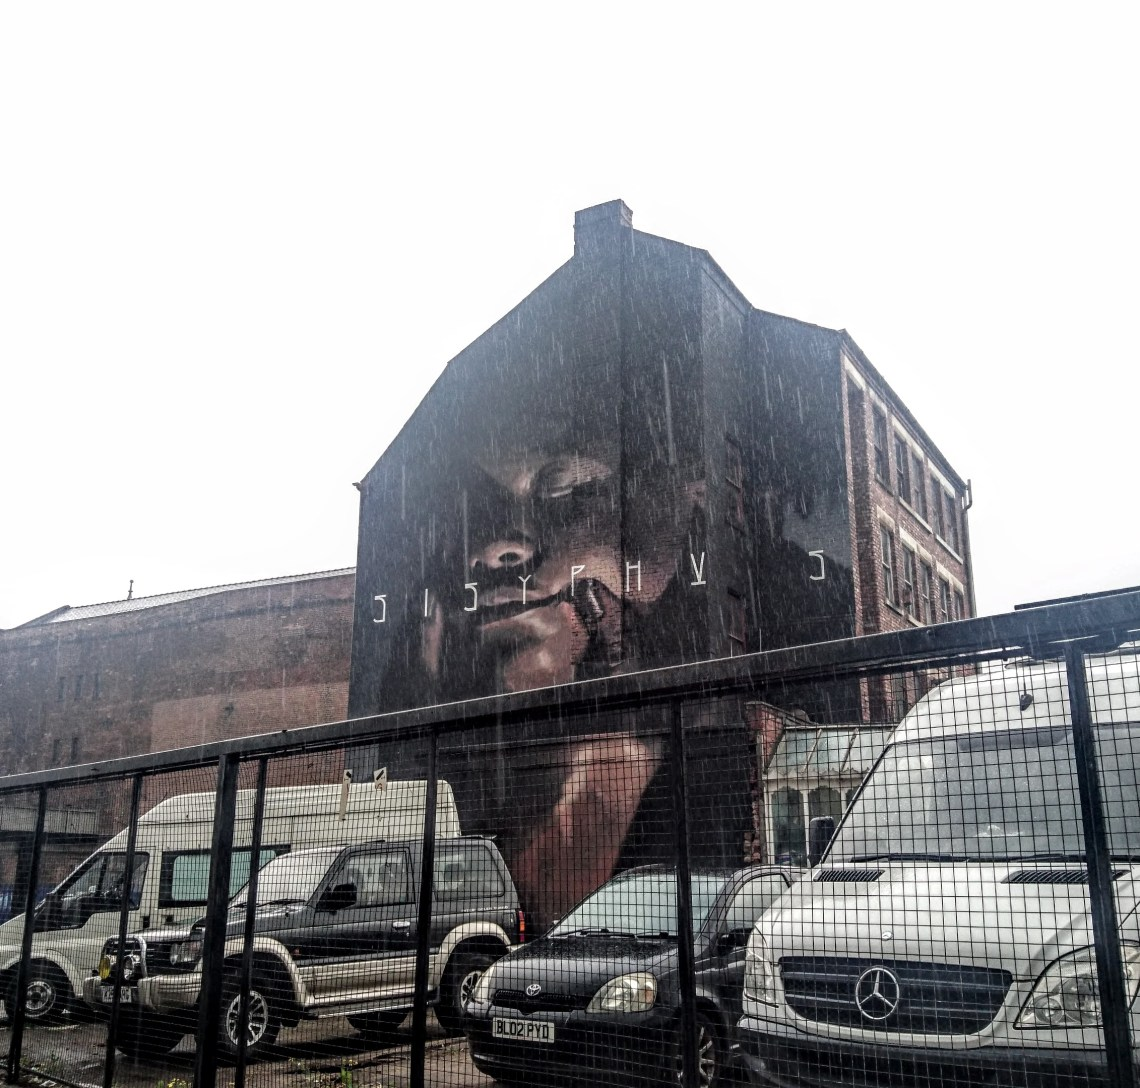 Street Art by Axel Void in the Northern Quarter in Manchester